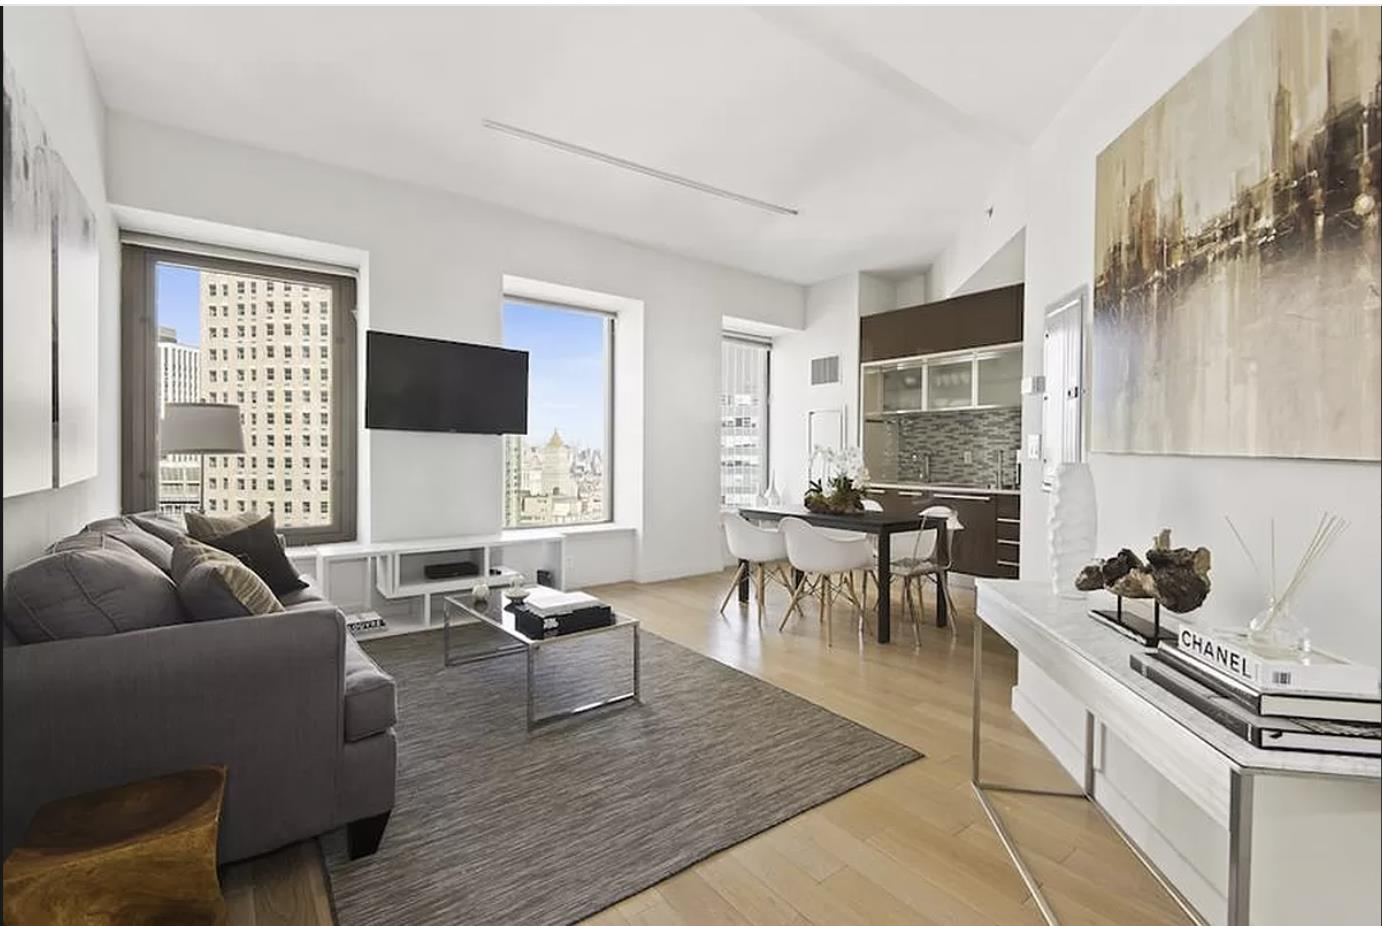 OPTION TO BUY IN BITCOINCorner two-bedroom two-bathroom atop the 38th floor in the historic neighborhood of Financial District offers quintessential downtown living. The highlights of the apartment are the 10-feet ceilings, river view, and top of the line finishes in a world-class amenity-rich building. Upon entering, one is greeted by an open kitchen and 6-feet oversized windows, which capture sunlight through the north and west exposures. The custom chef's kitchen is outfitted with high-end appliances such as a SubZero refrigerator, Bosch dual ovens, Bosch five burner range, and a Miele dishwasher. The master bedroom features river views and a walk-in-closet. The master bathroom contains a glass-enclosed standing shower, deep soaking tub, marble floors, dual vanity, and a black granite countertop. There is wide-plank oak wood flooring throughout the apartment and a stackable in-unit washer dryer.The fitness center features Peloton bikes and offers free yoga classes throughout the week. The building features over 30,000 SQFT of amenities including a state-of-the-art fitness center, yoga studio, billiards room, cinema room, children's playroom, parking garage, housekeeping services, 24-hour concierge, cold storage, bicycle storage, and on-site management. The wraparound roof terrace offers sensational views of the skyline and is an ideal place to meet fellow residents of the building. The in-house Andaz restaurant provides room service to residents and the Luxury Attache personal concierge is a value added perk.75 Wall is situated in close proximity to Brookfield Place (Hermes, Burberry, Bottega Veneta, etc), Eataly, and the historic Seaport district (Pier 17, South Street Museum, Fulton Stall Market). The building is centrally located near all major transportation 2, 3, 4, 5, A, C, J, Z trains, PATH, water taxi, heliport, and the FDR